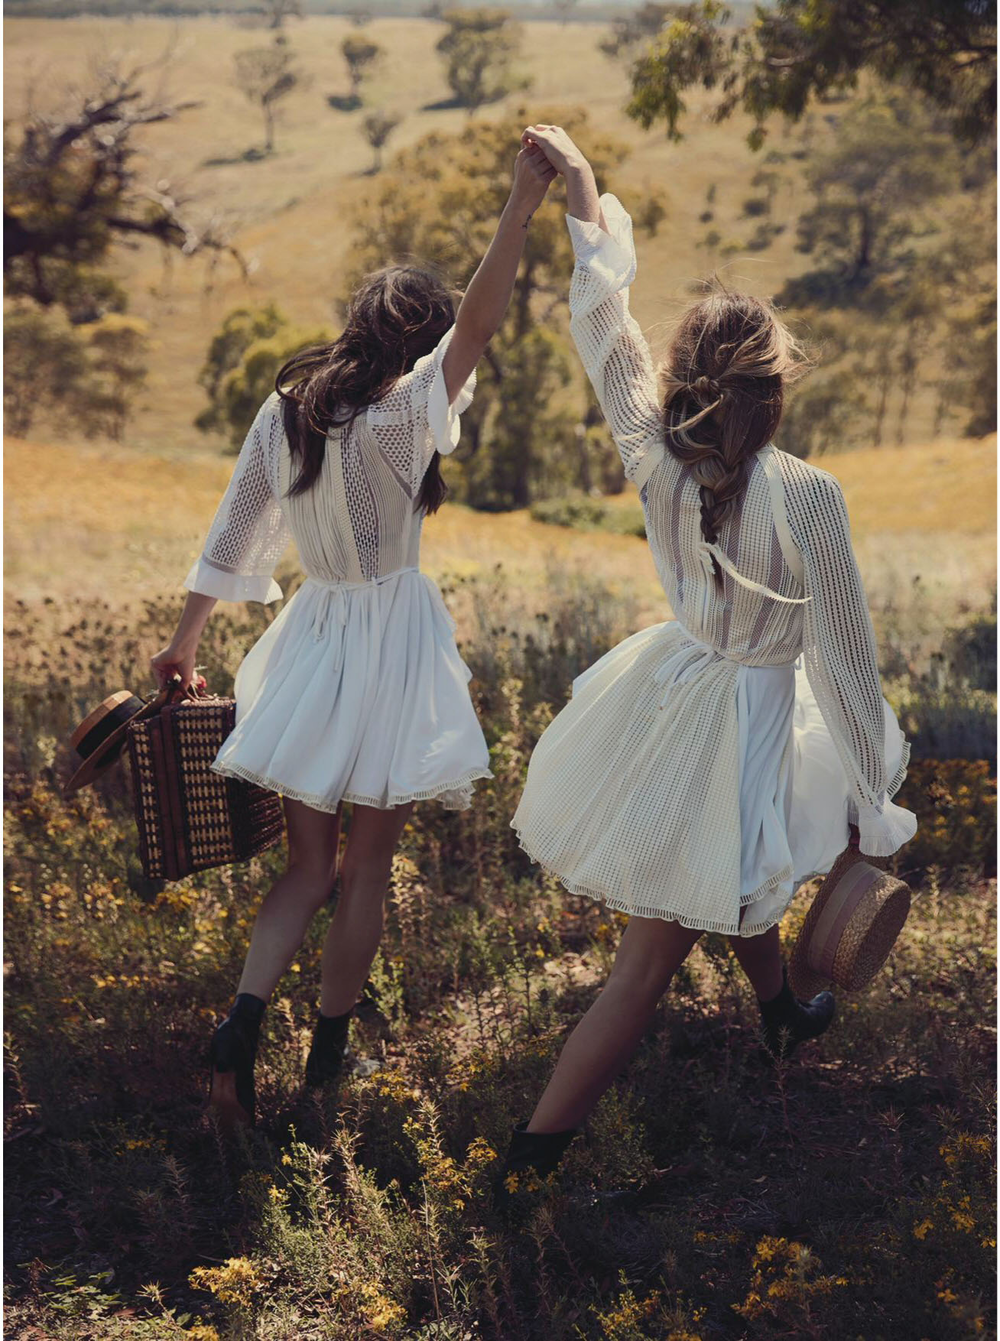 teresa-palmer-phoebe-tonkin-by-will-davidson-for-vogue-australia-march-2015-3.png